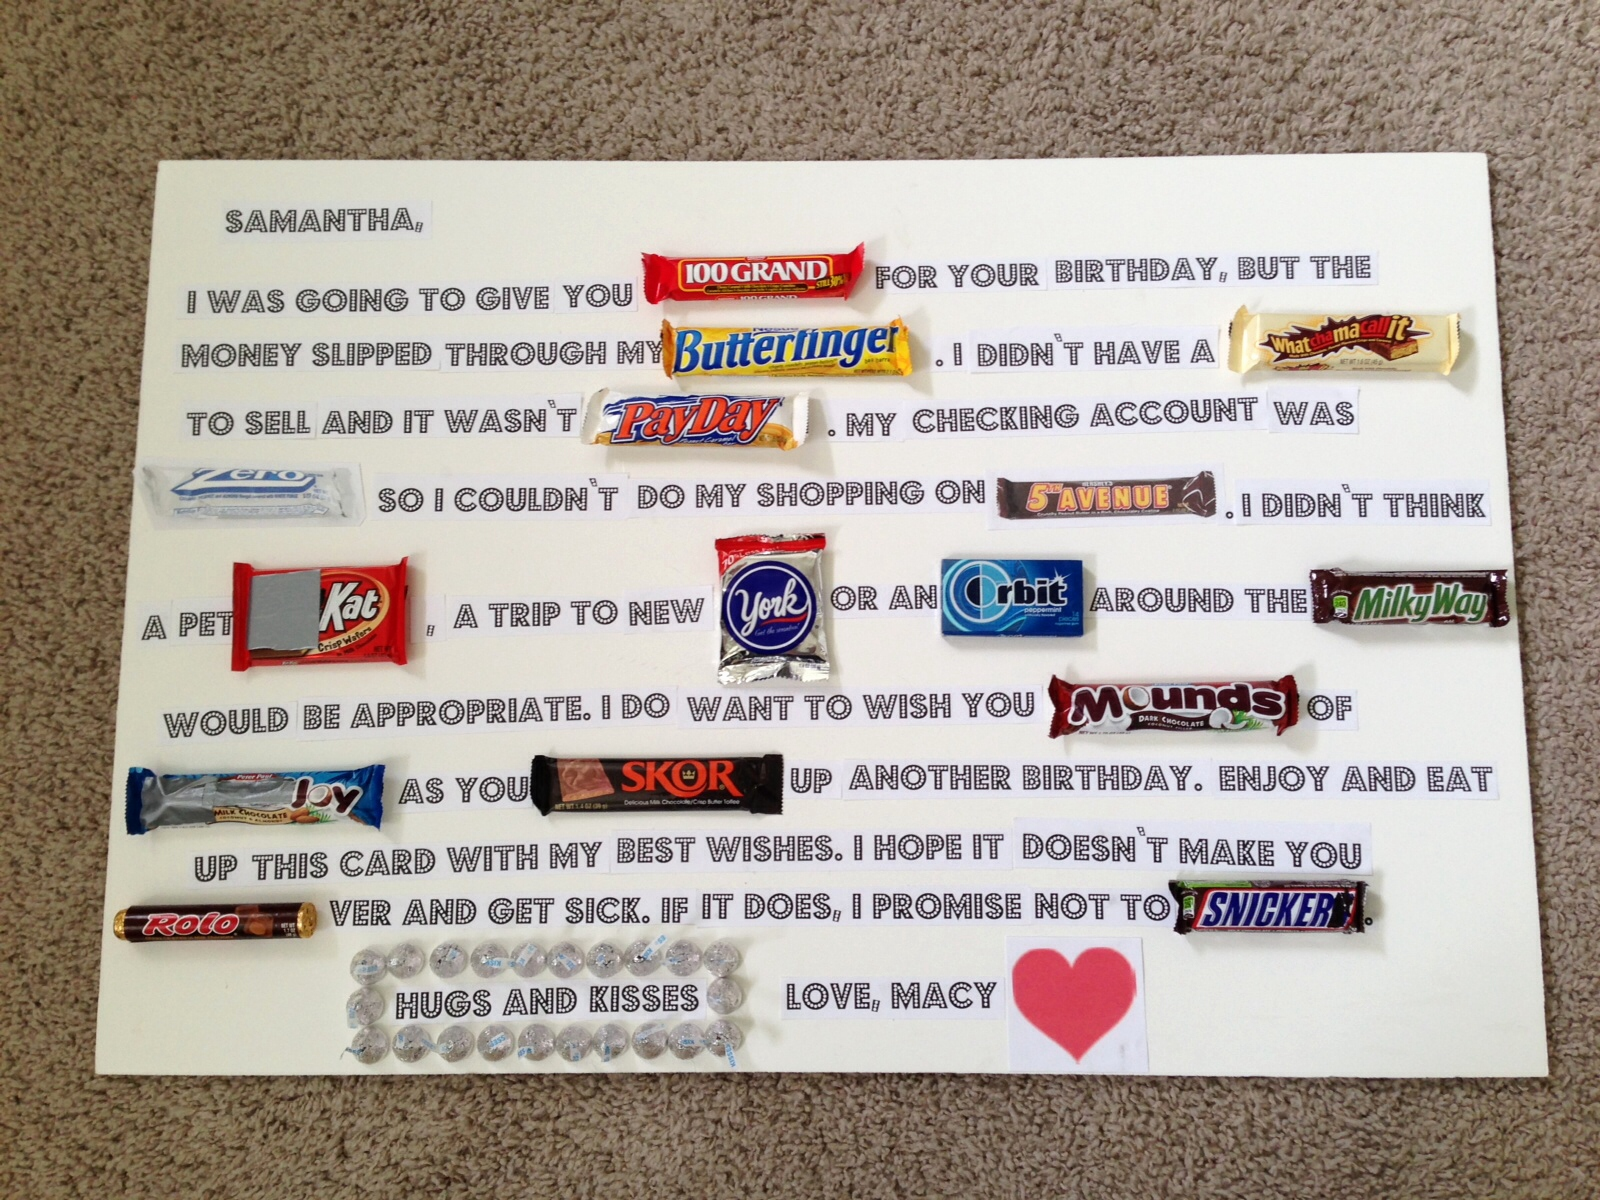 candy bar poster for 40th birthday ; birthday-card-made-out-of-candy-bars-best-of-25-unique-candy-bar-poems-ideas-on-pinterest-of-birthday-card-made-out-of-candy-bars